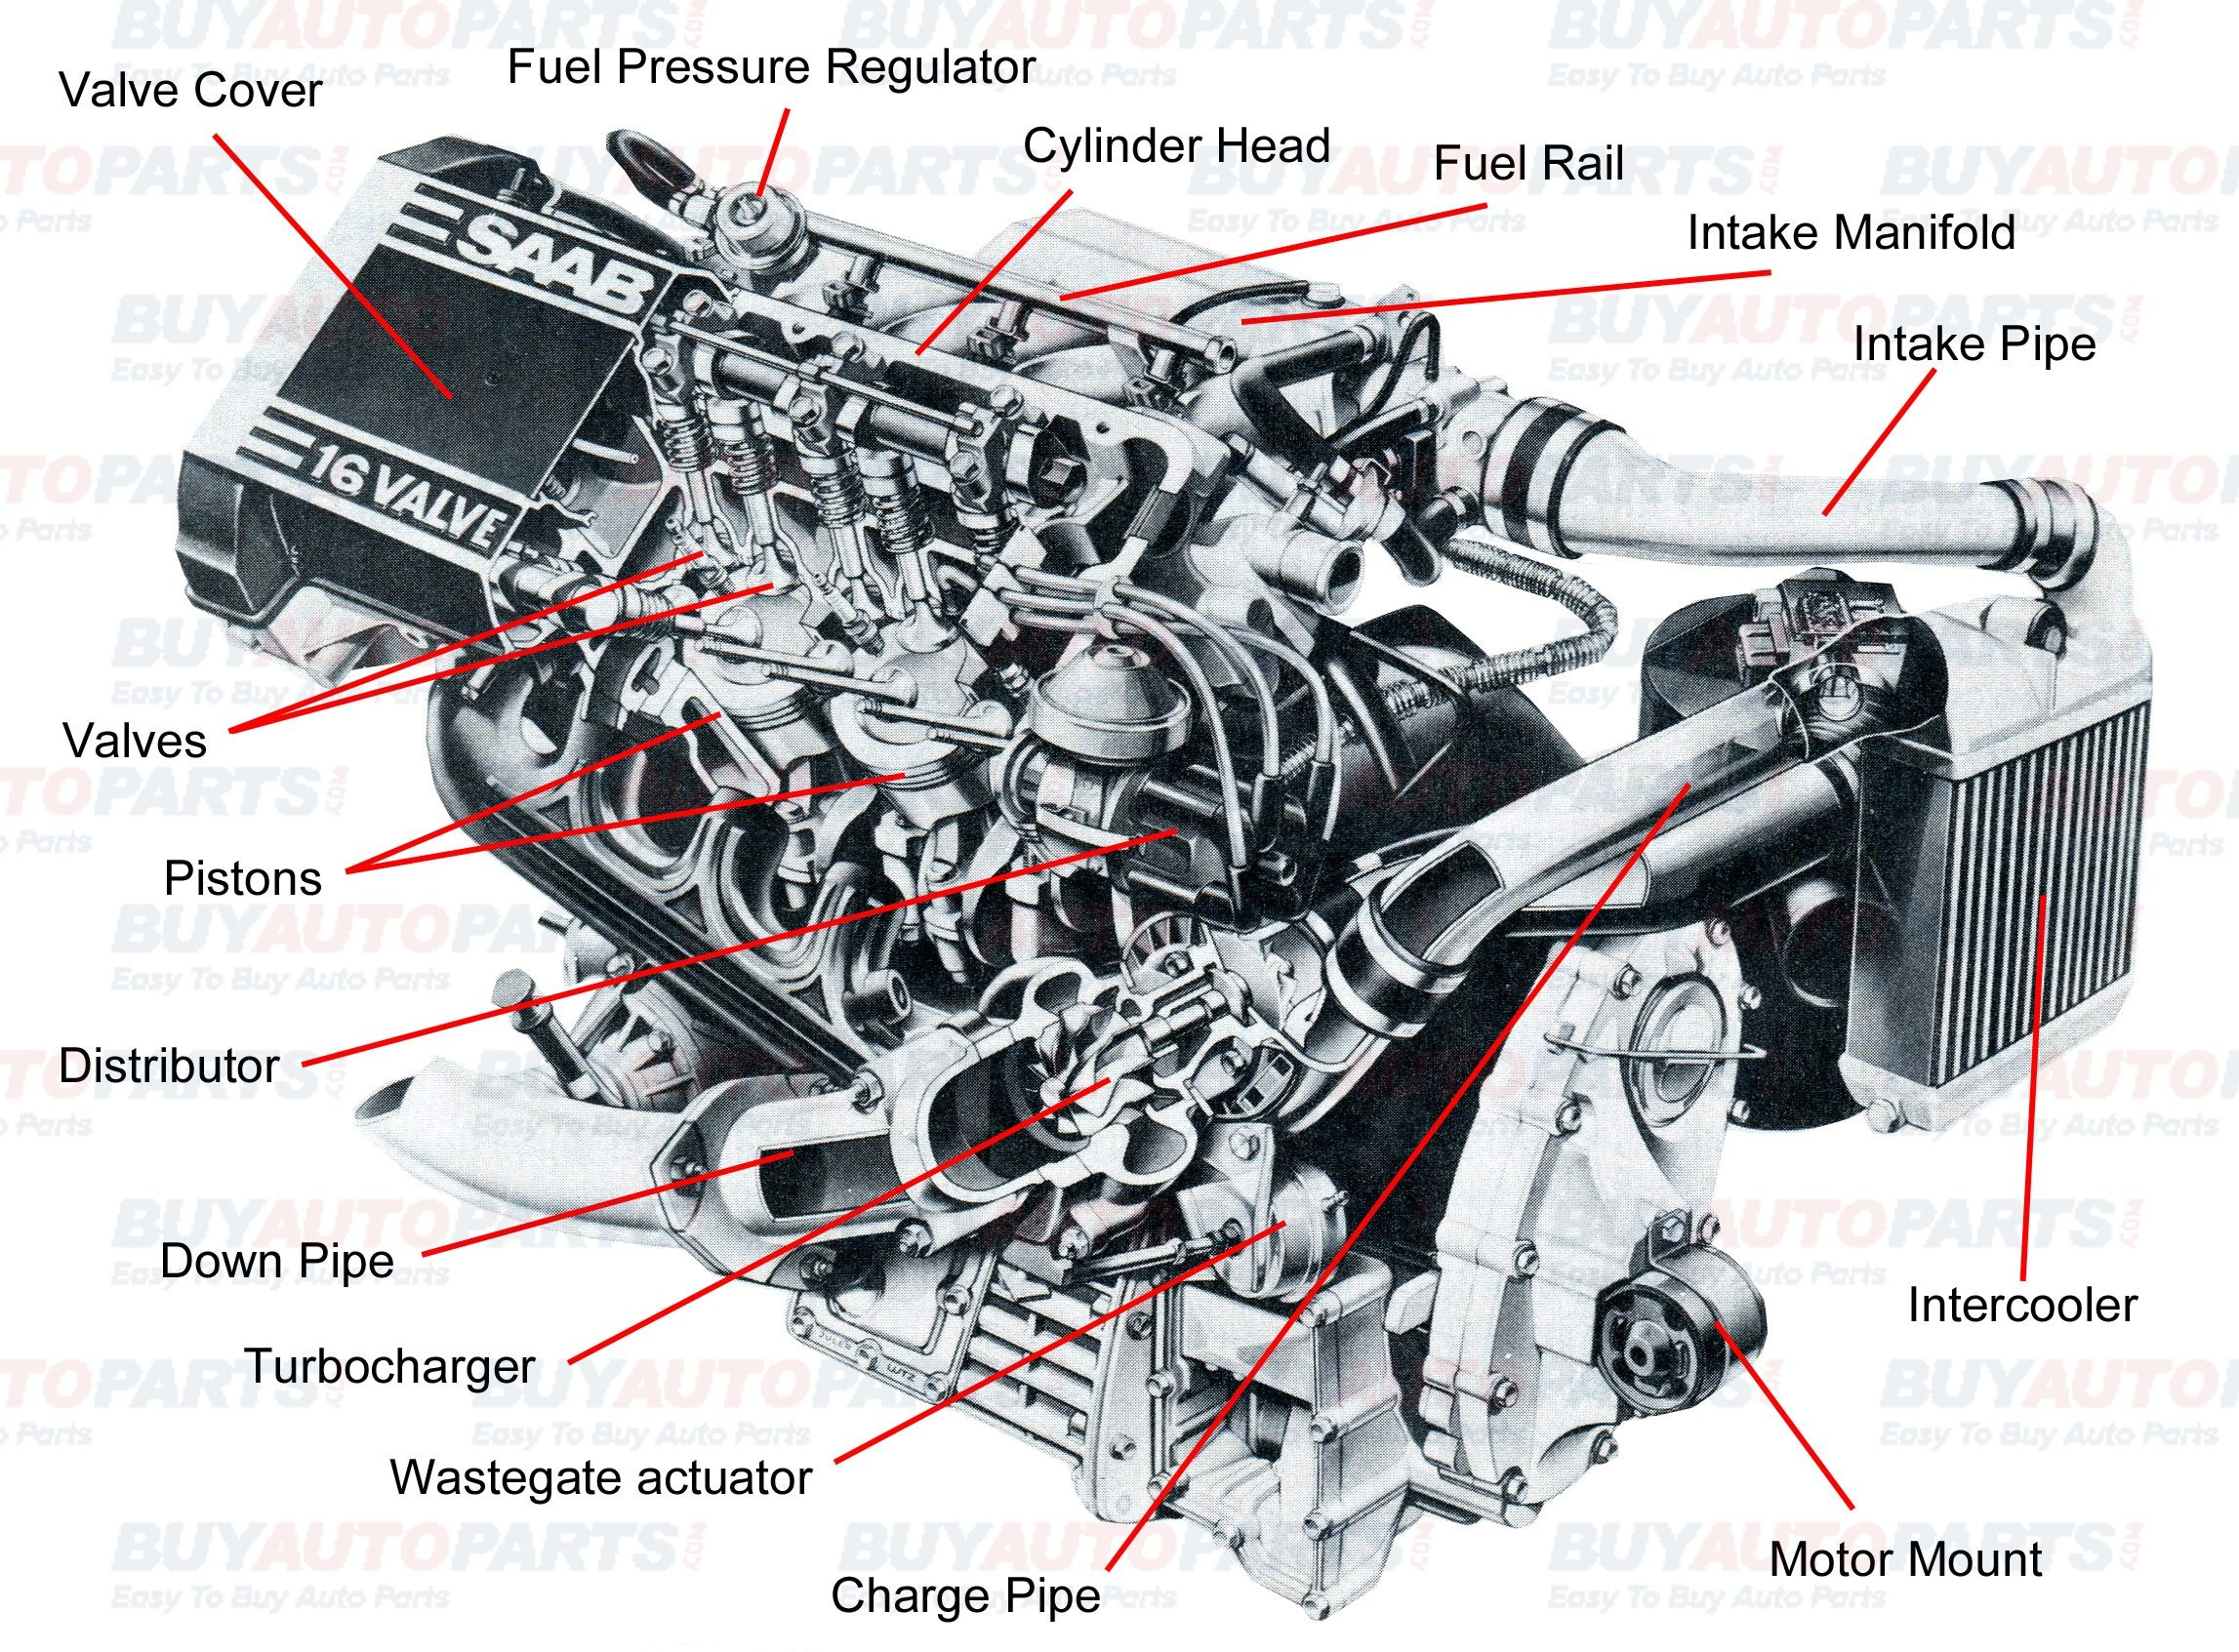 Where Can I Find Full Engine Diagram for My Car Basic Engine Parts Understanding Turbos Of Where Can I Find Full Engine Diagram for My Car